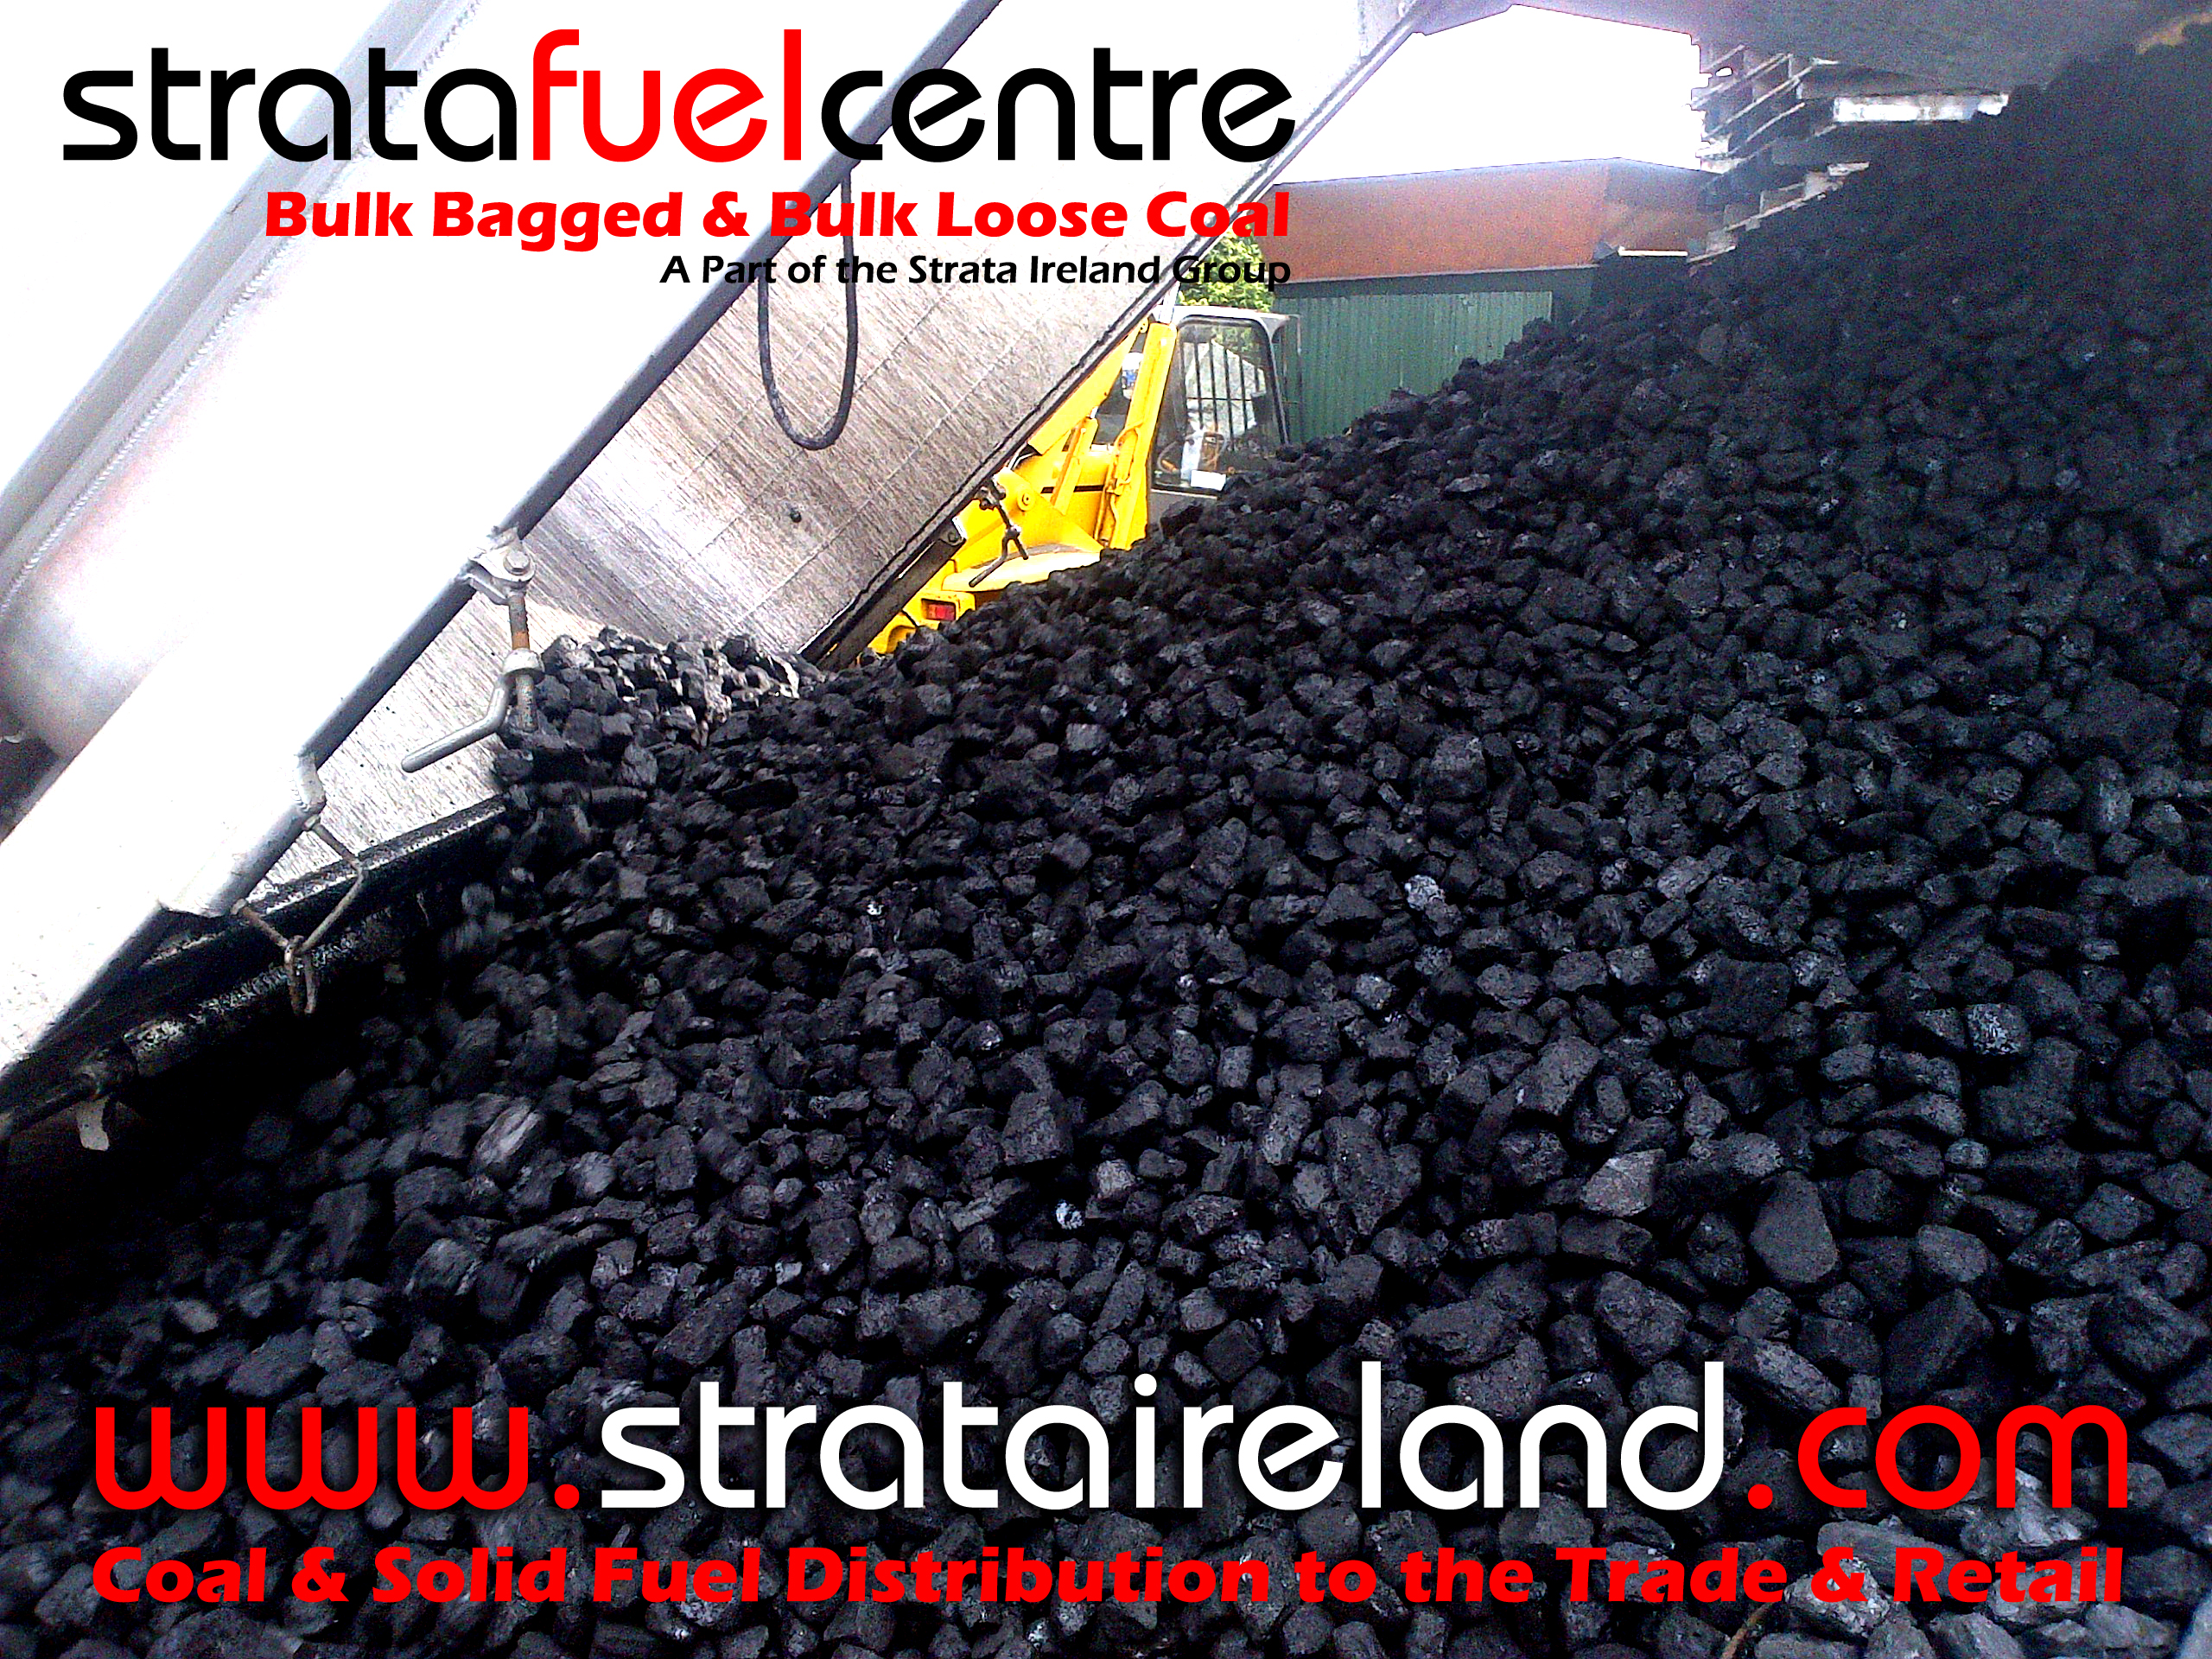 Strata Fuel Centre Bulk Loose Coal